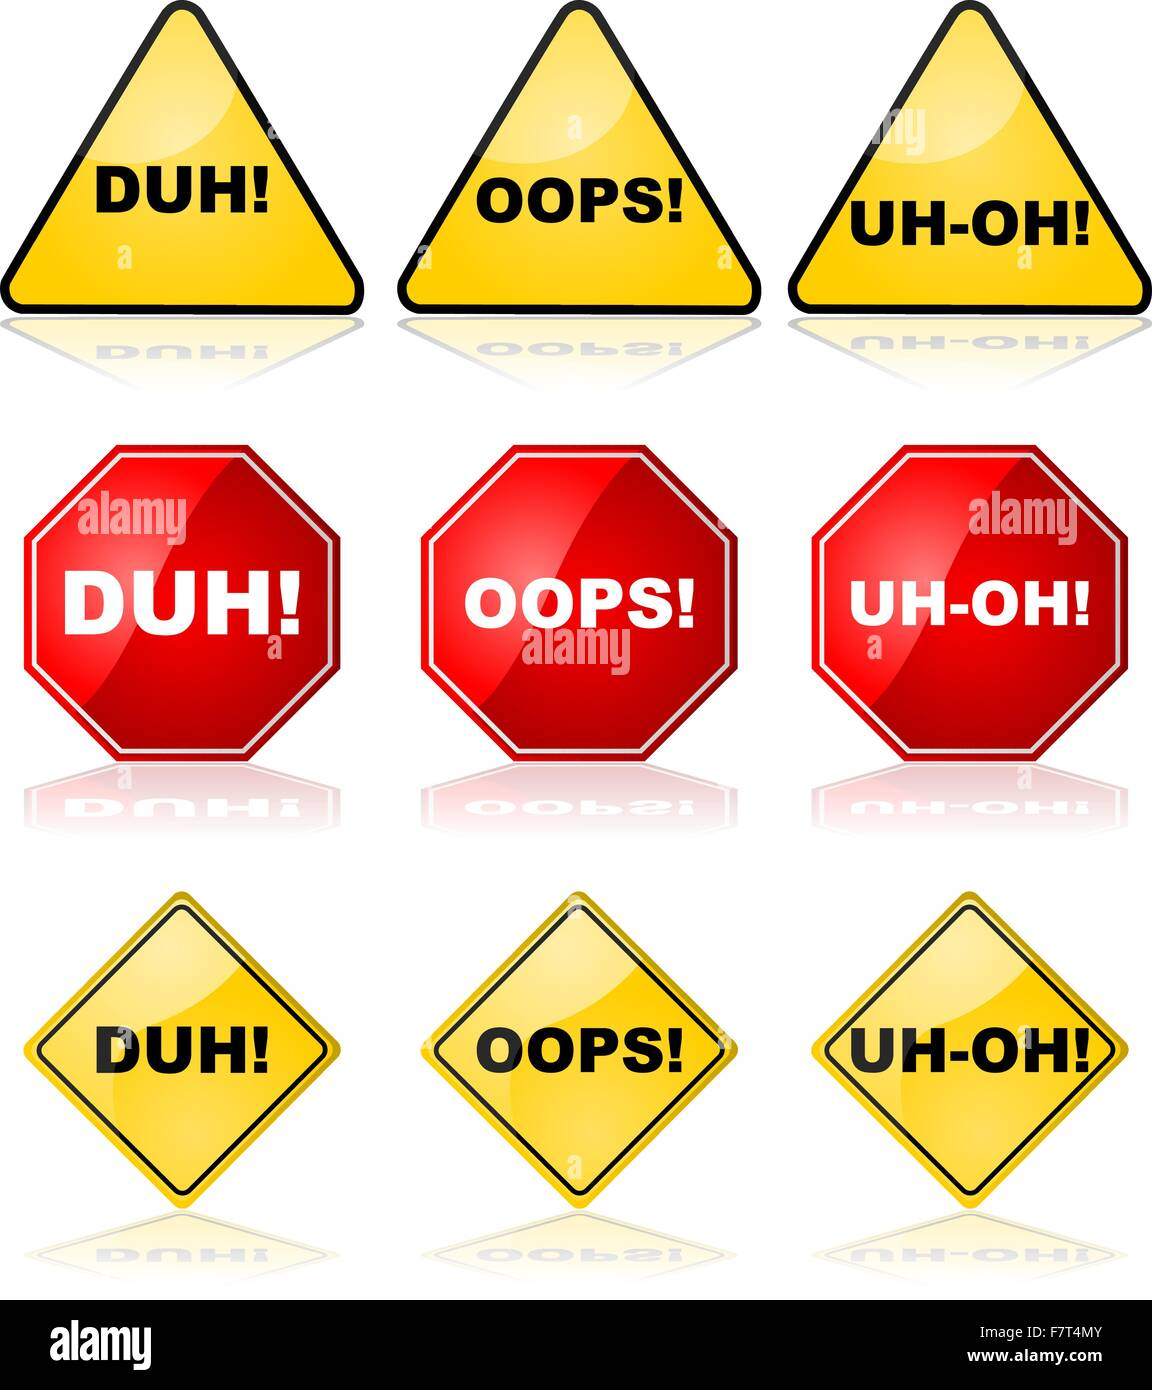 Mistake signs - Stock Image